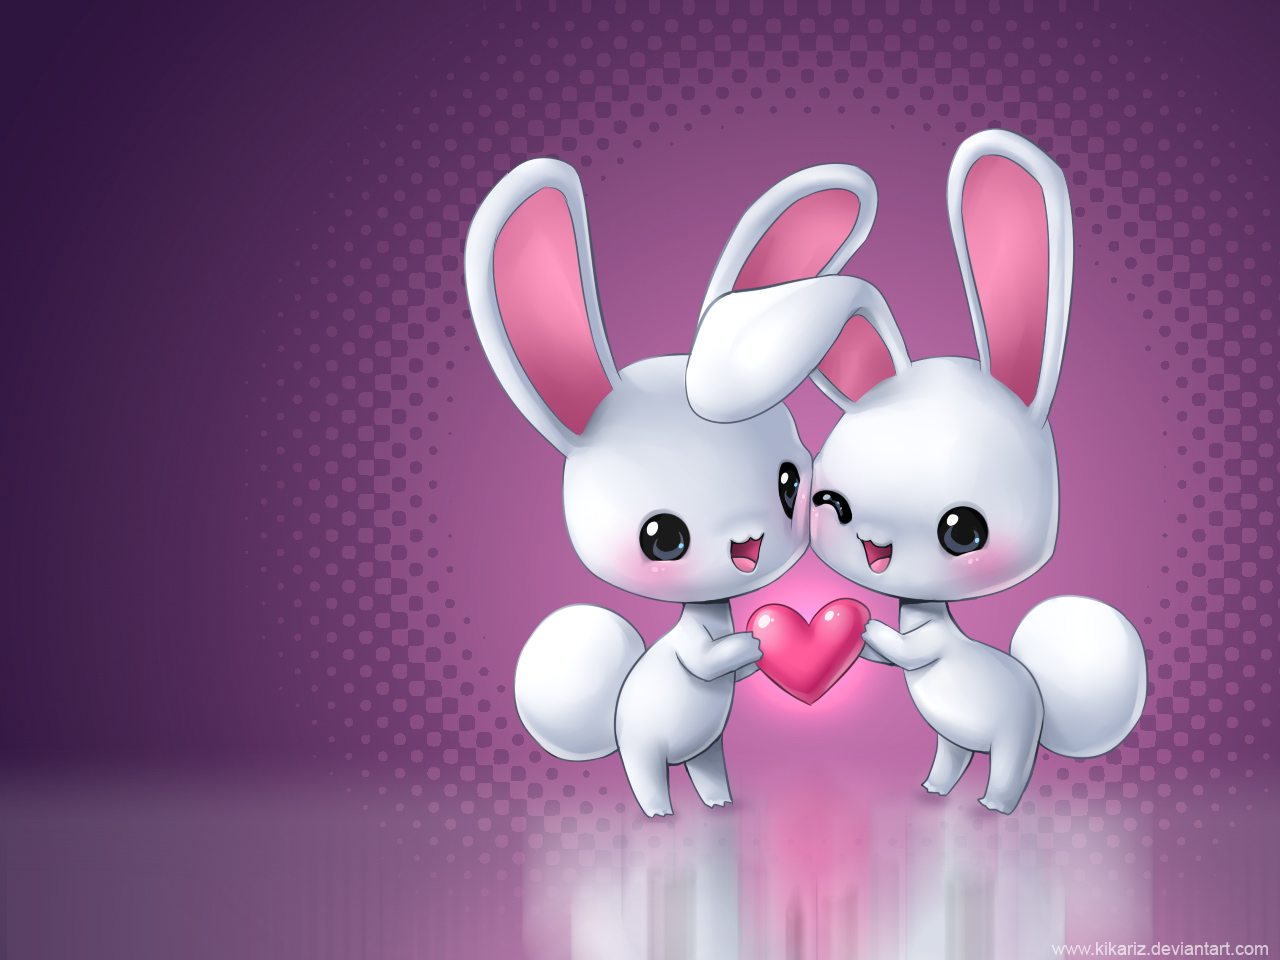 Love Wallpaper Animated Love Wallpapers Animated Love Wallpapers